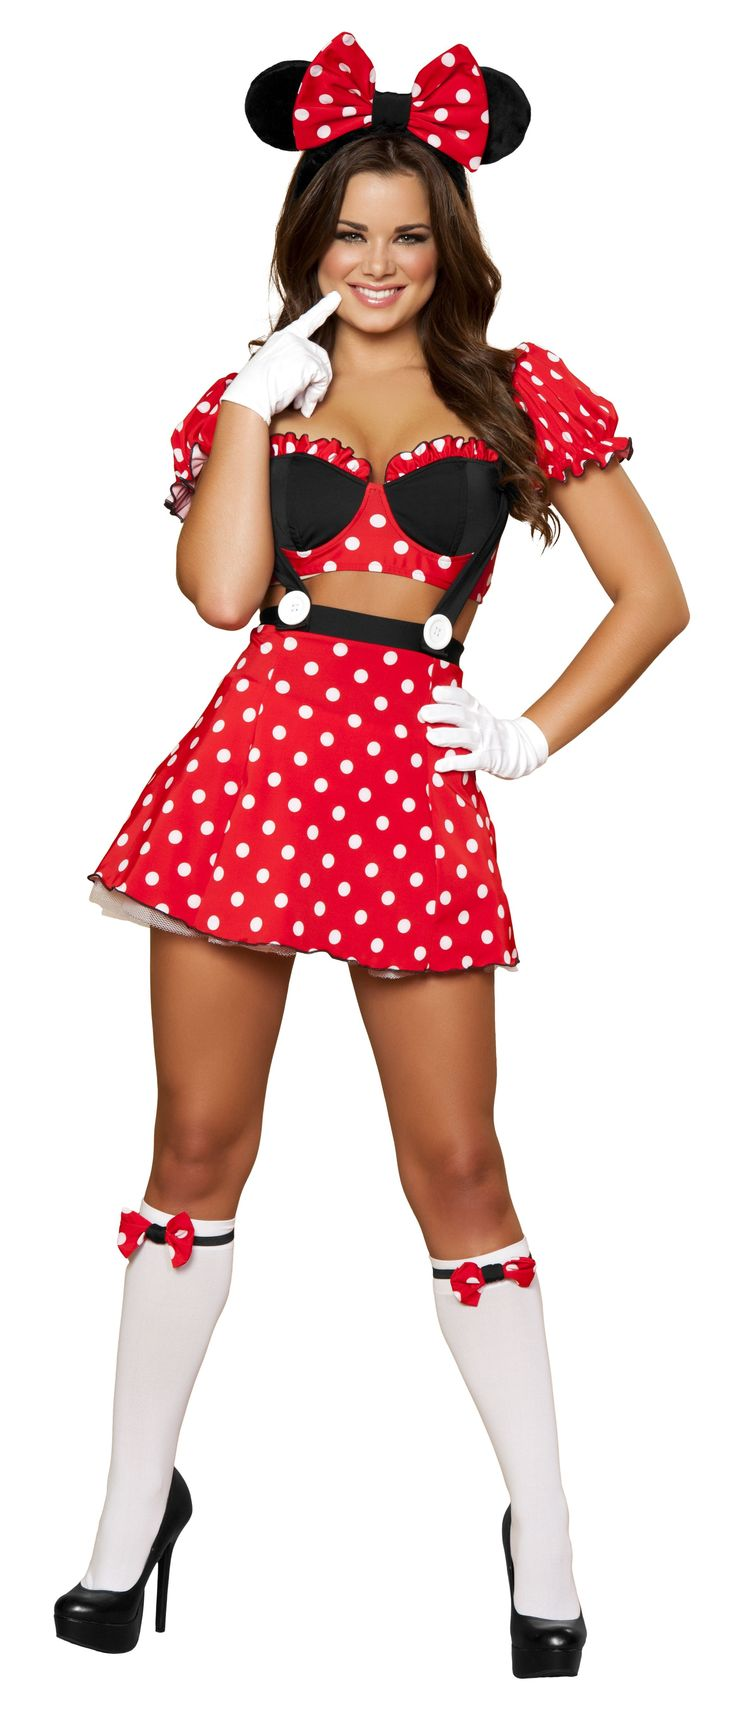 59 best Halloween Costumes images on Pinterest